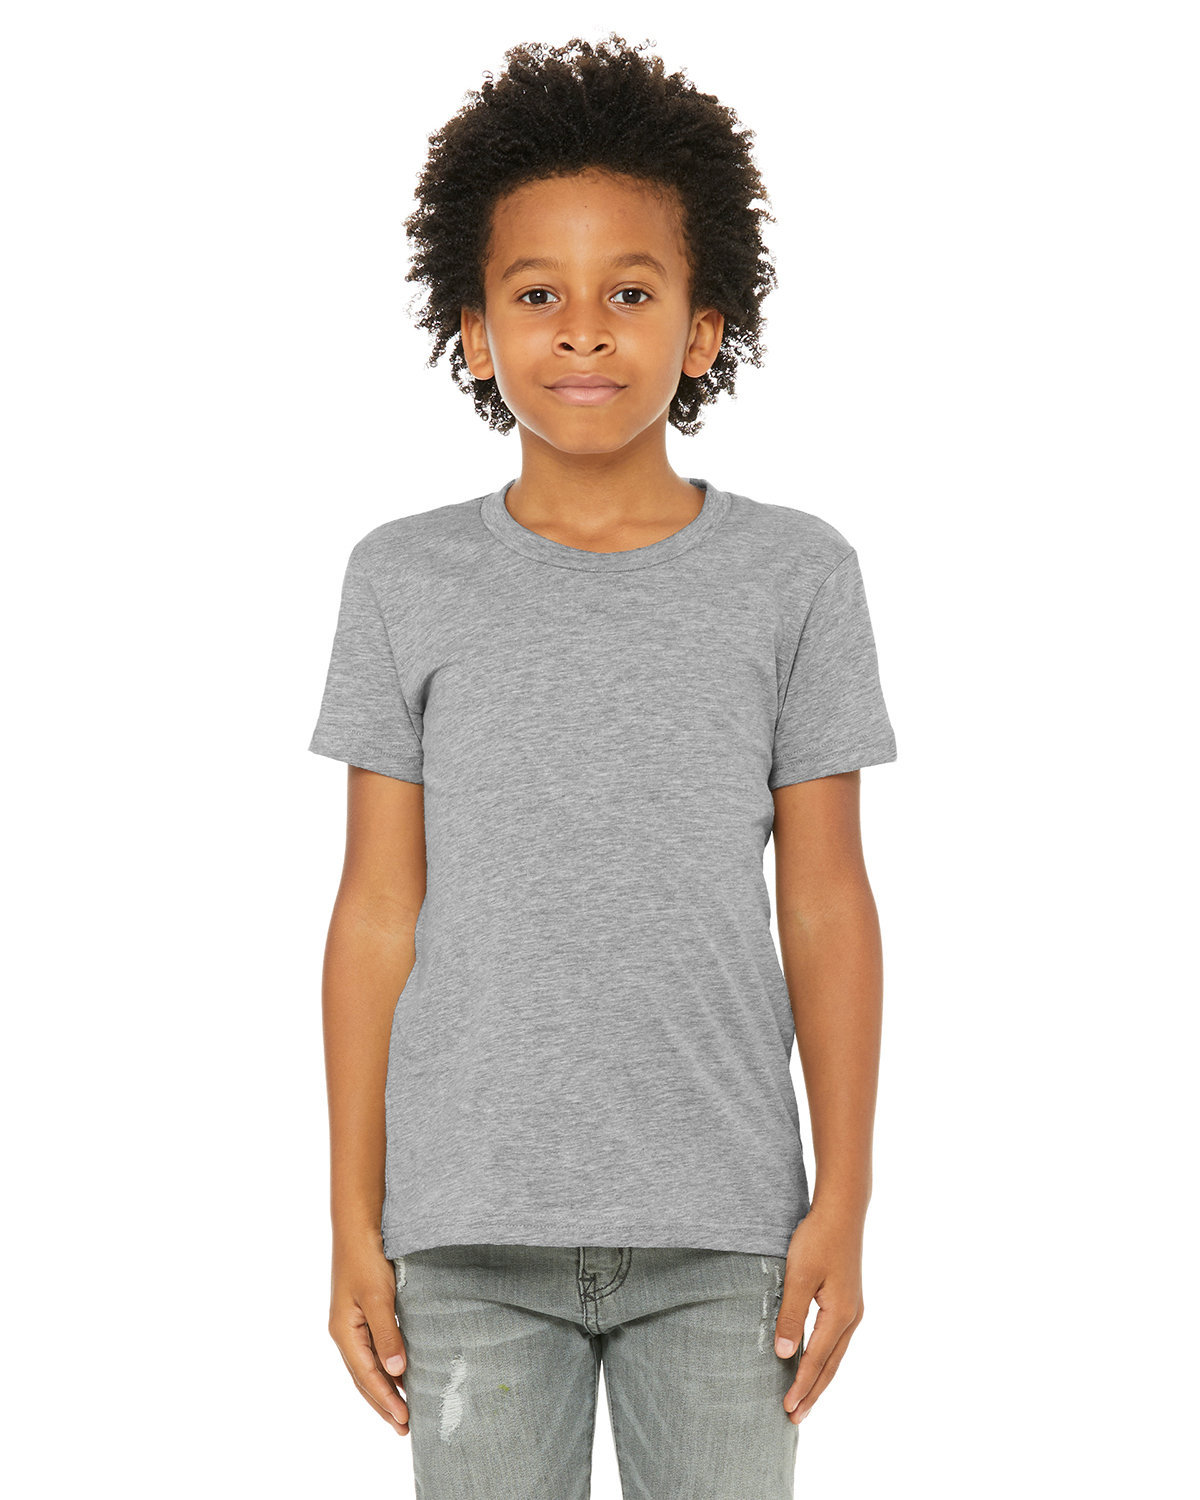 Bella + Canvas Youth Jersey T-Shirt ATHLETIC HEATHER